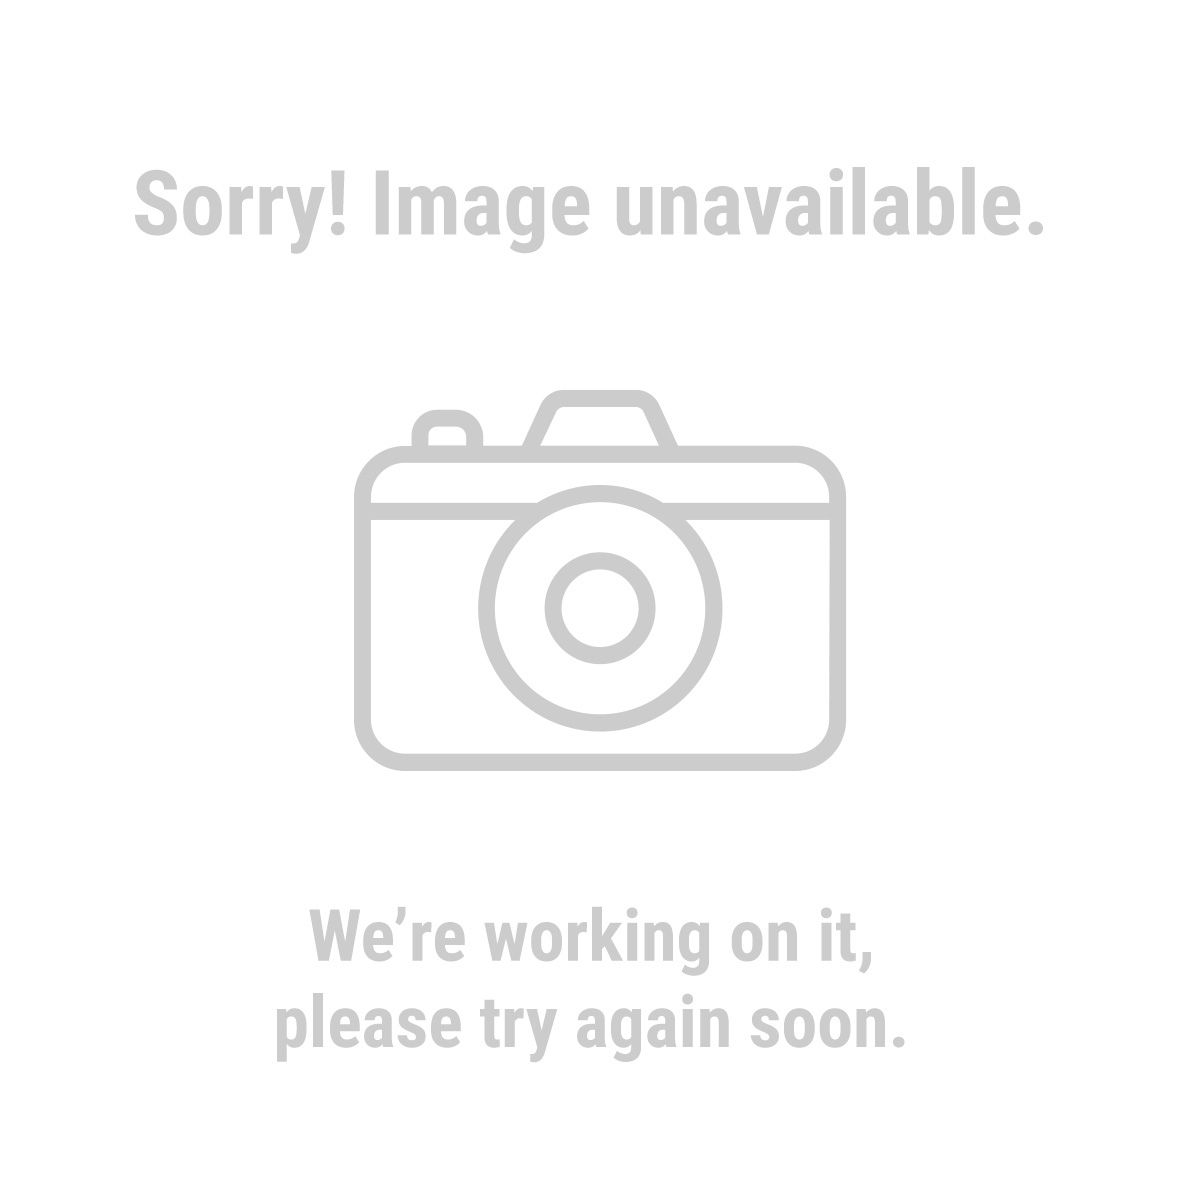 Haul-Master 96513 1000 lbs. Tri-Fold Loading Ramps, 1 Pair